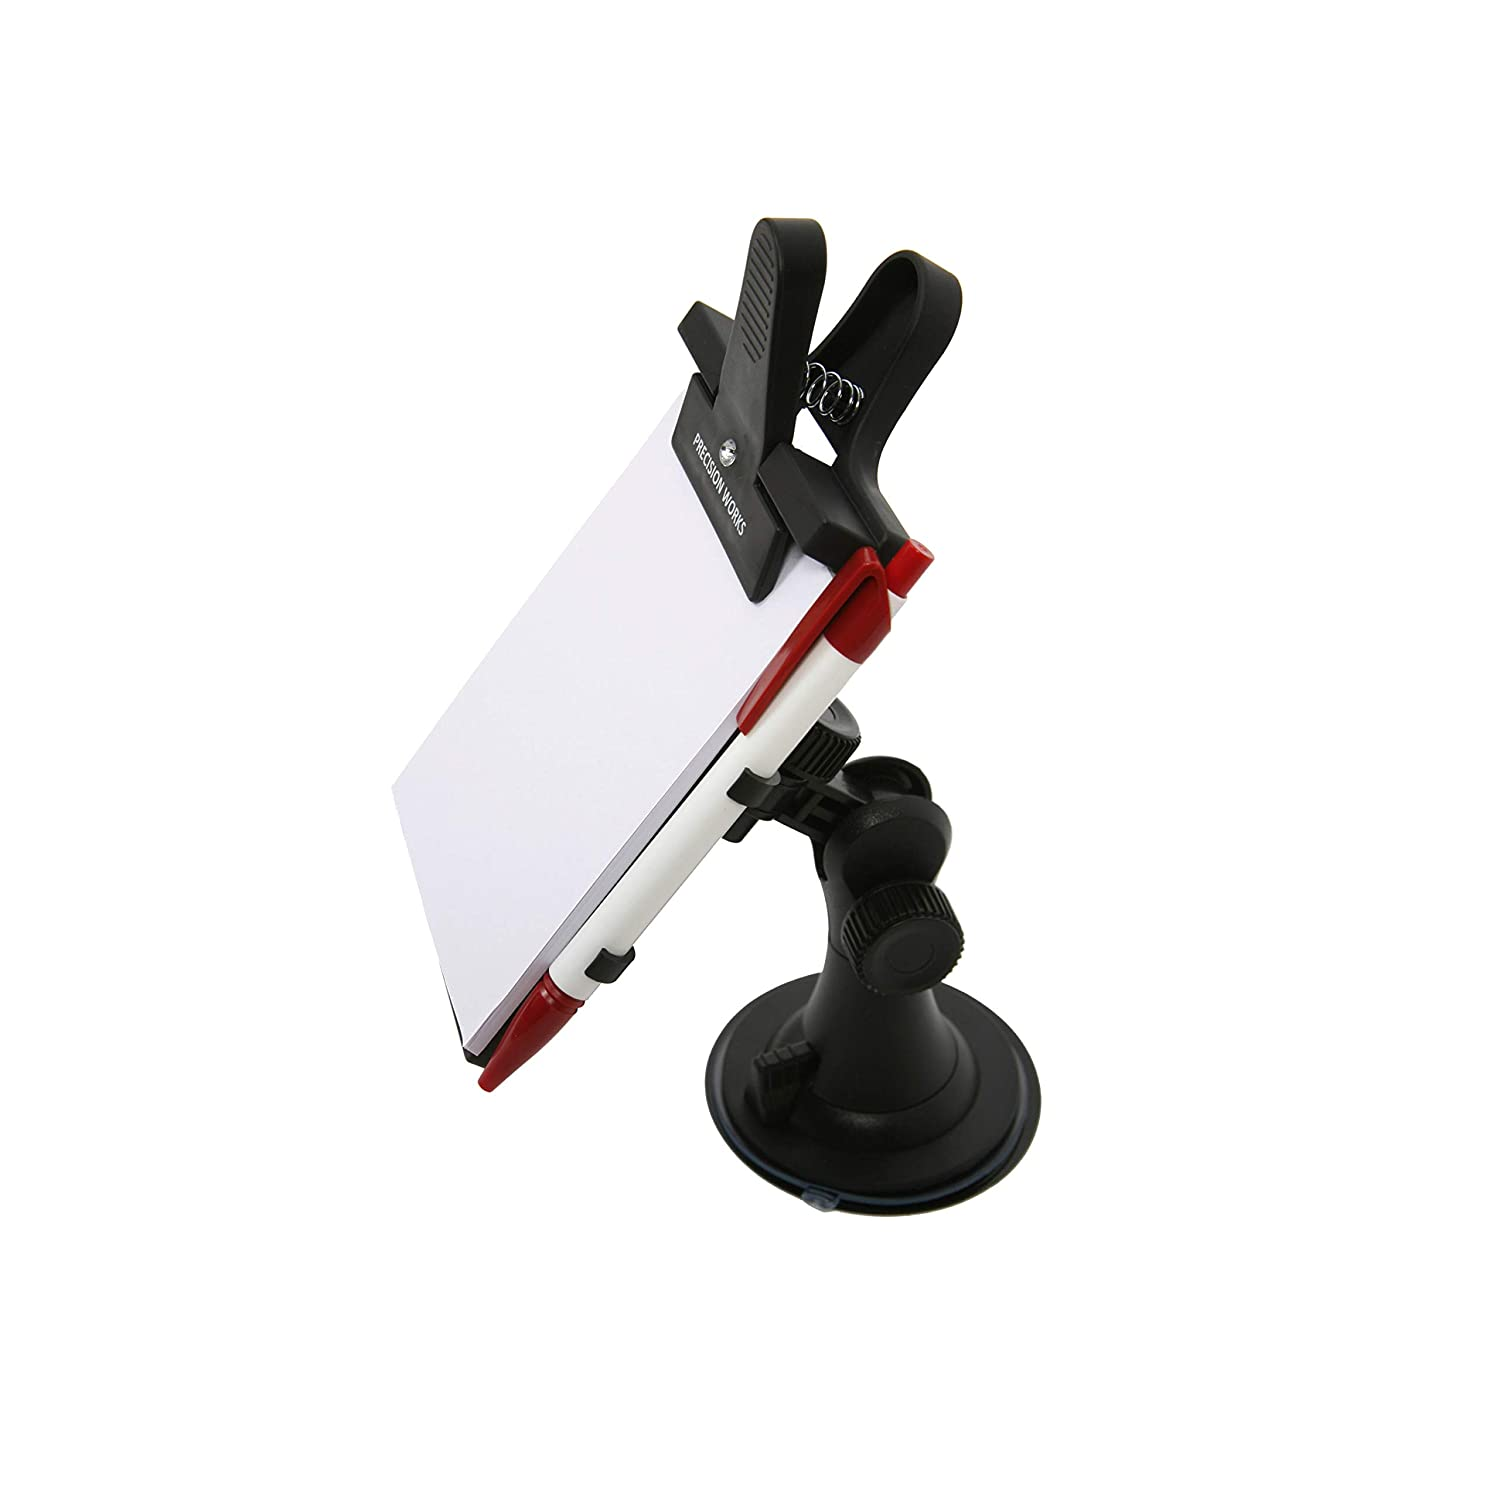 Dashboard Memo Pad For Car Windshield Or Dashboard By Precision Works (Notepad Holder)